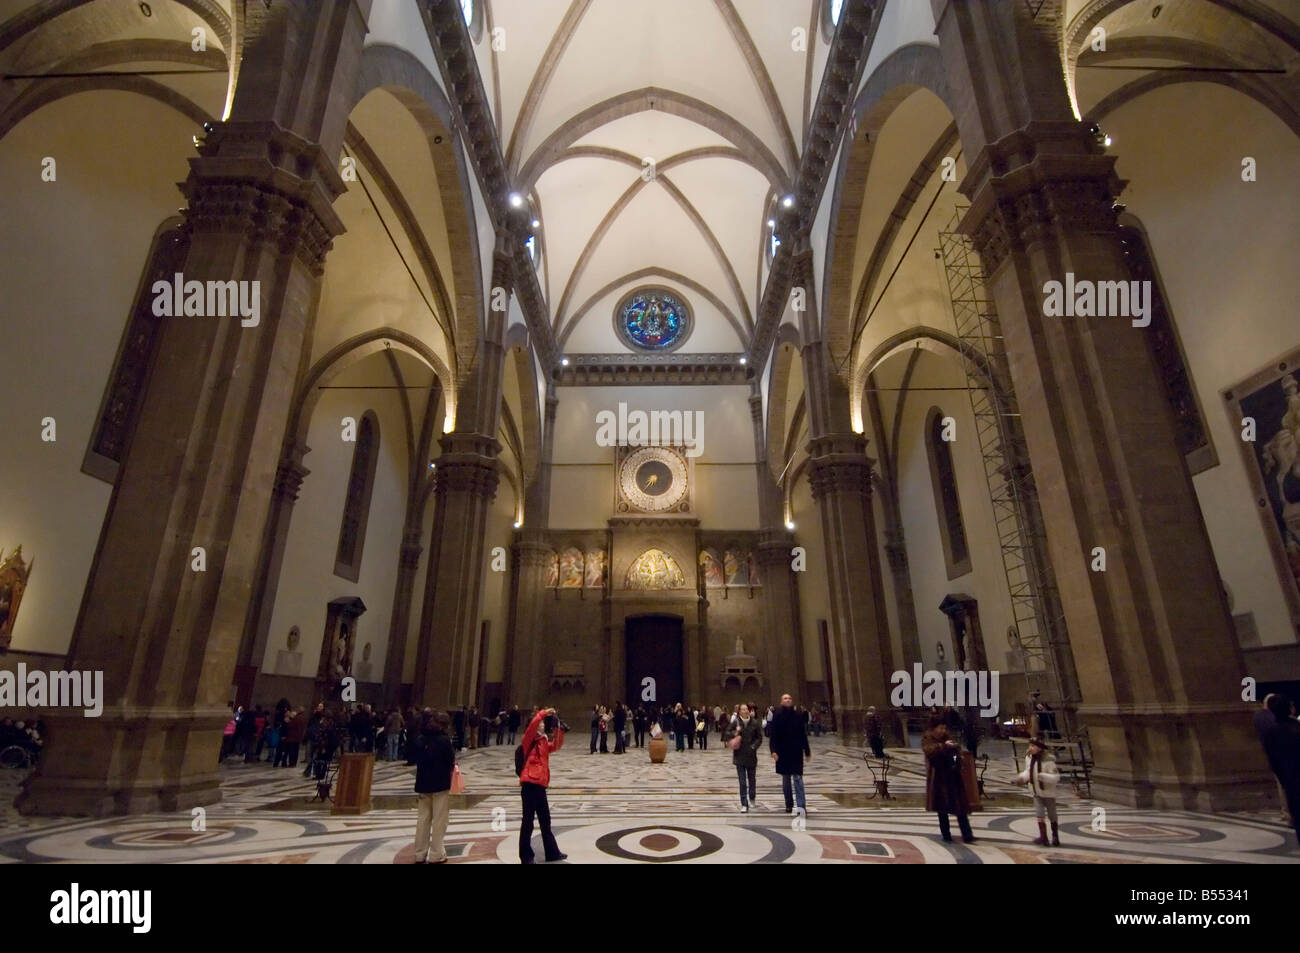 An interior view of the Basilica di Santa Maria del Fiore (Duomo) in Florence with tourists visiting and taking - Stock Image